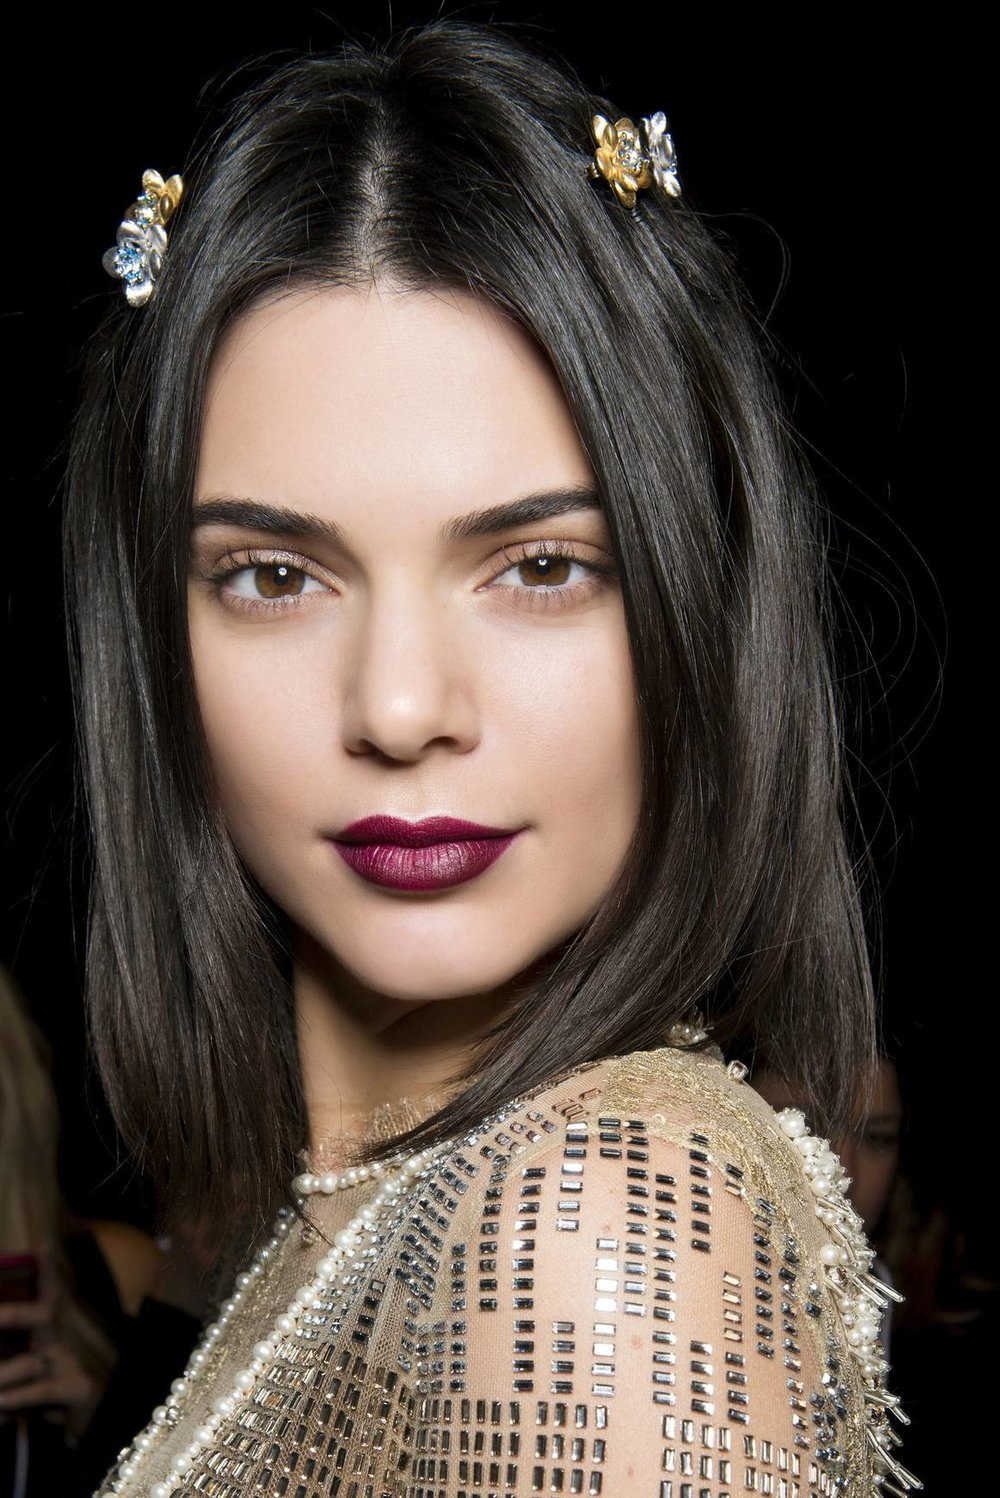 hair-styles-what-to-wear-christmas-day-dinner-holiday-outfits-winter-barrettes-kendalljenner.jpg